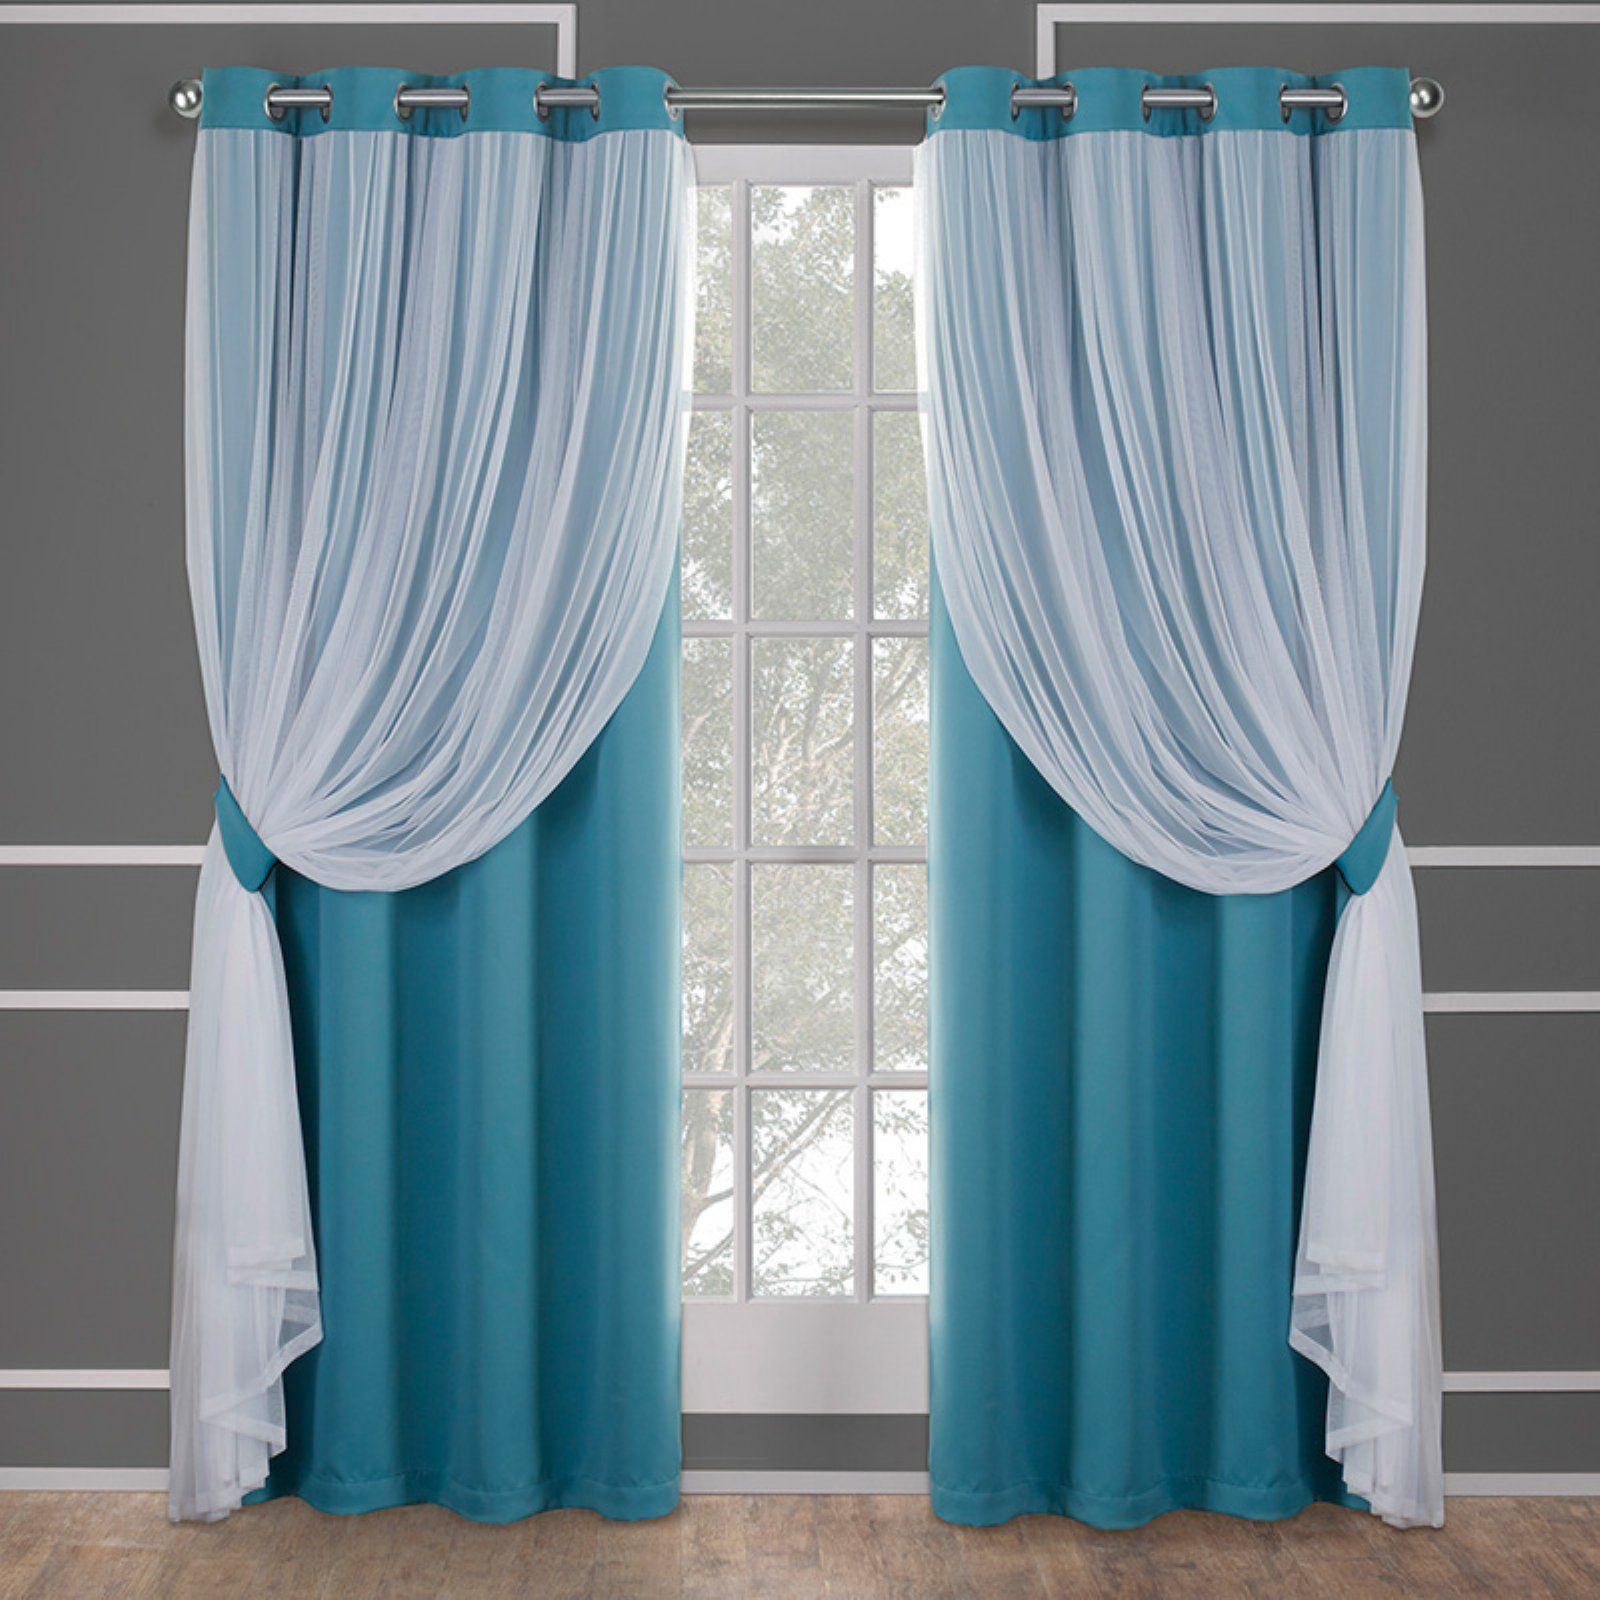 Home | Curtains In 2019 | Curtains, Drapes Curtains, Home Throughout Catarina Layered Curtain Panel Pairs With Grommet Top (View 6 of 20)